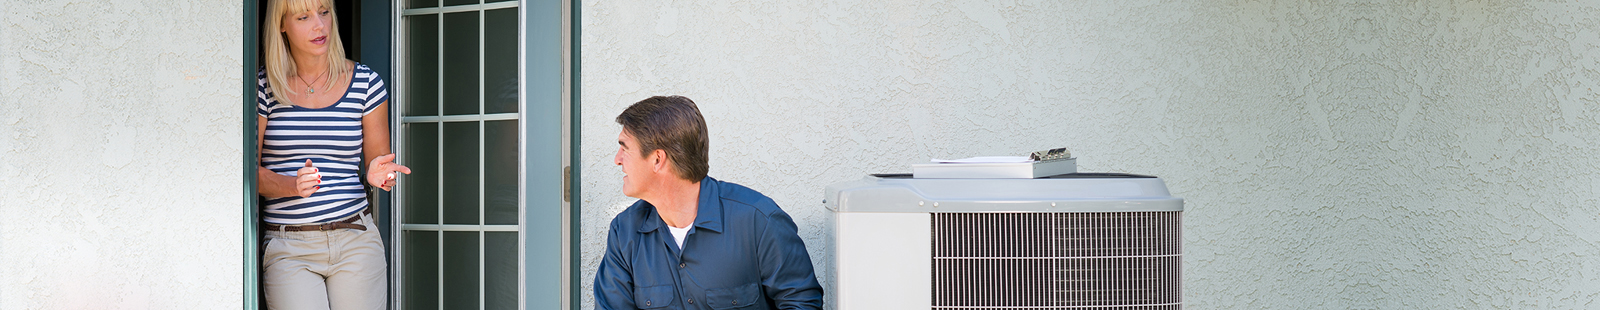 Woman talking to technician outside near air conditioner unit